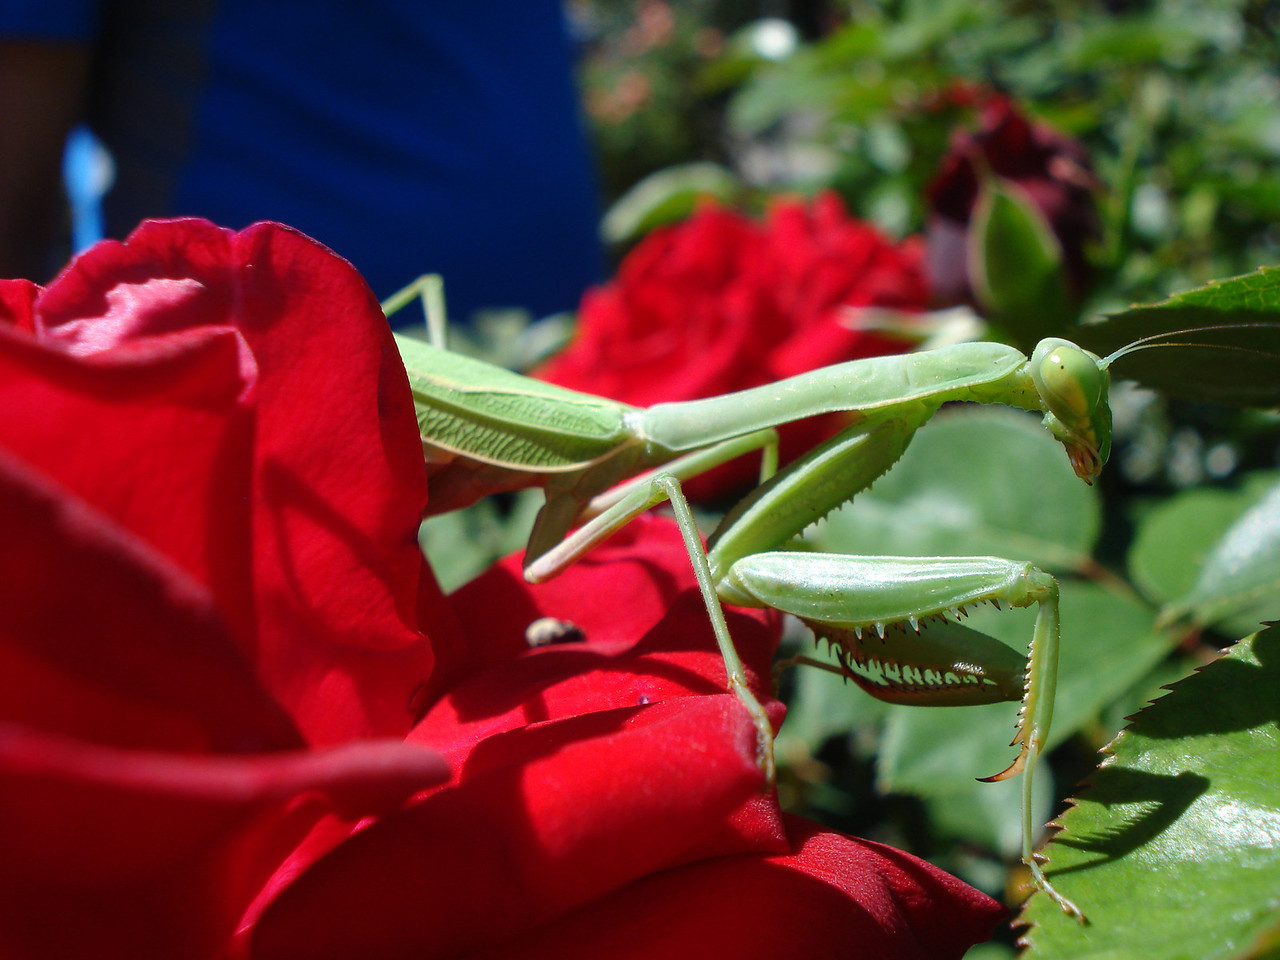 Capital Rose Garden